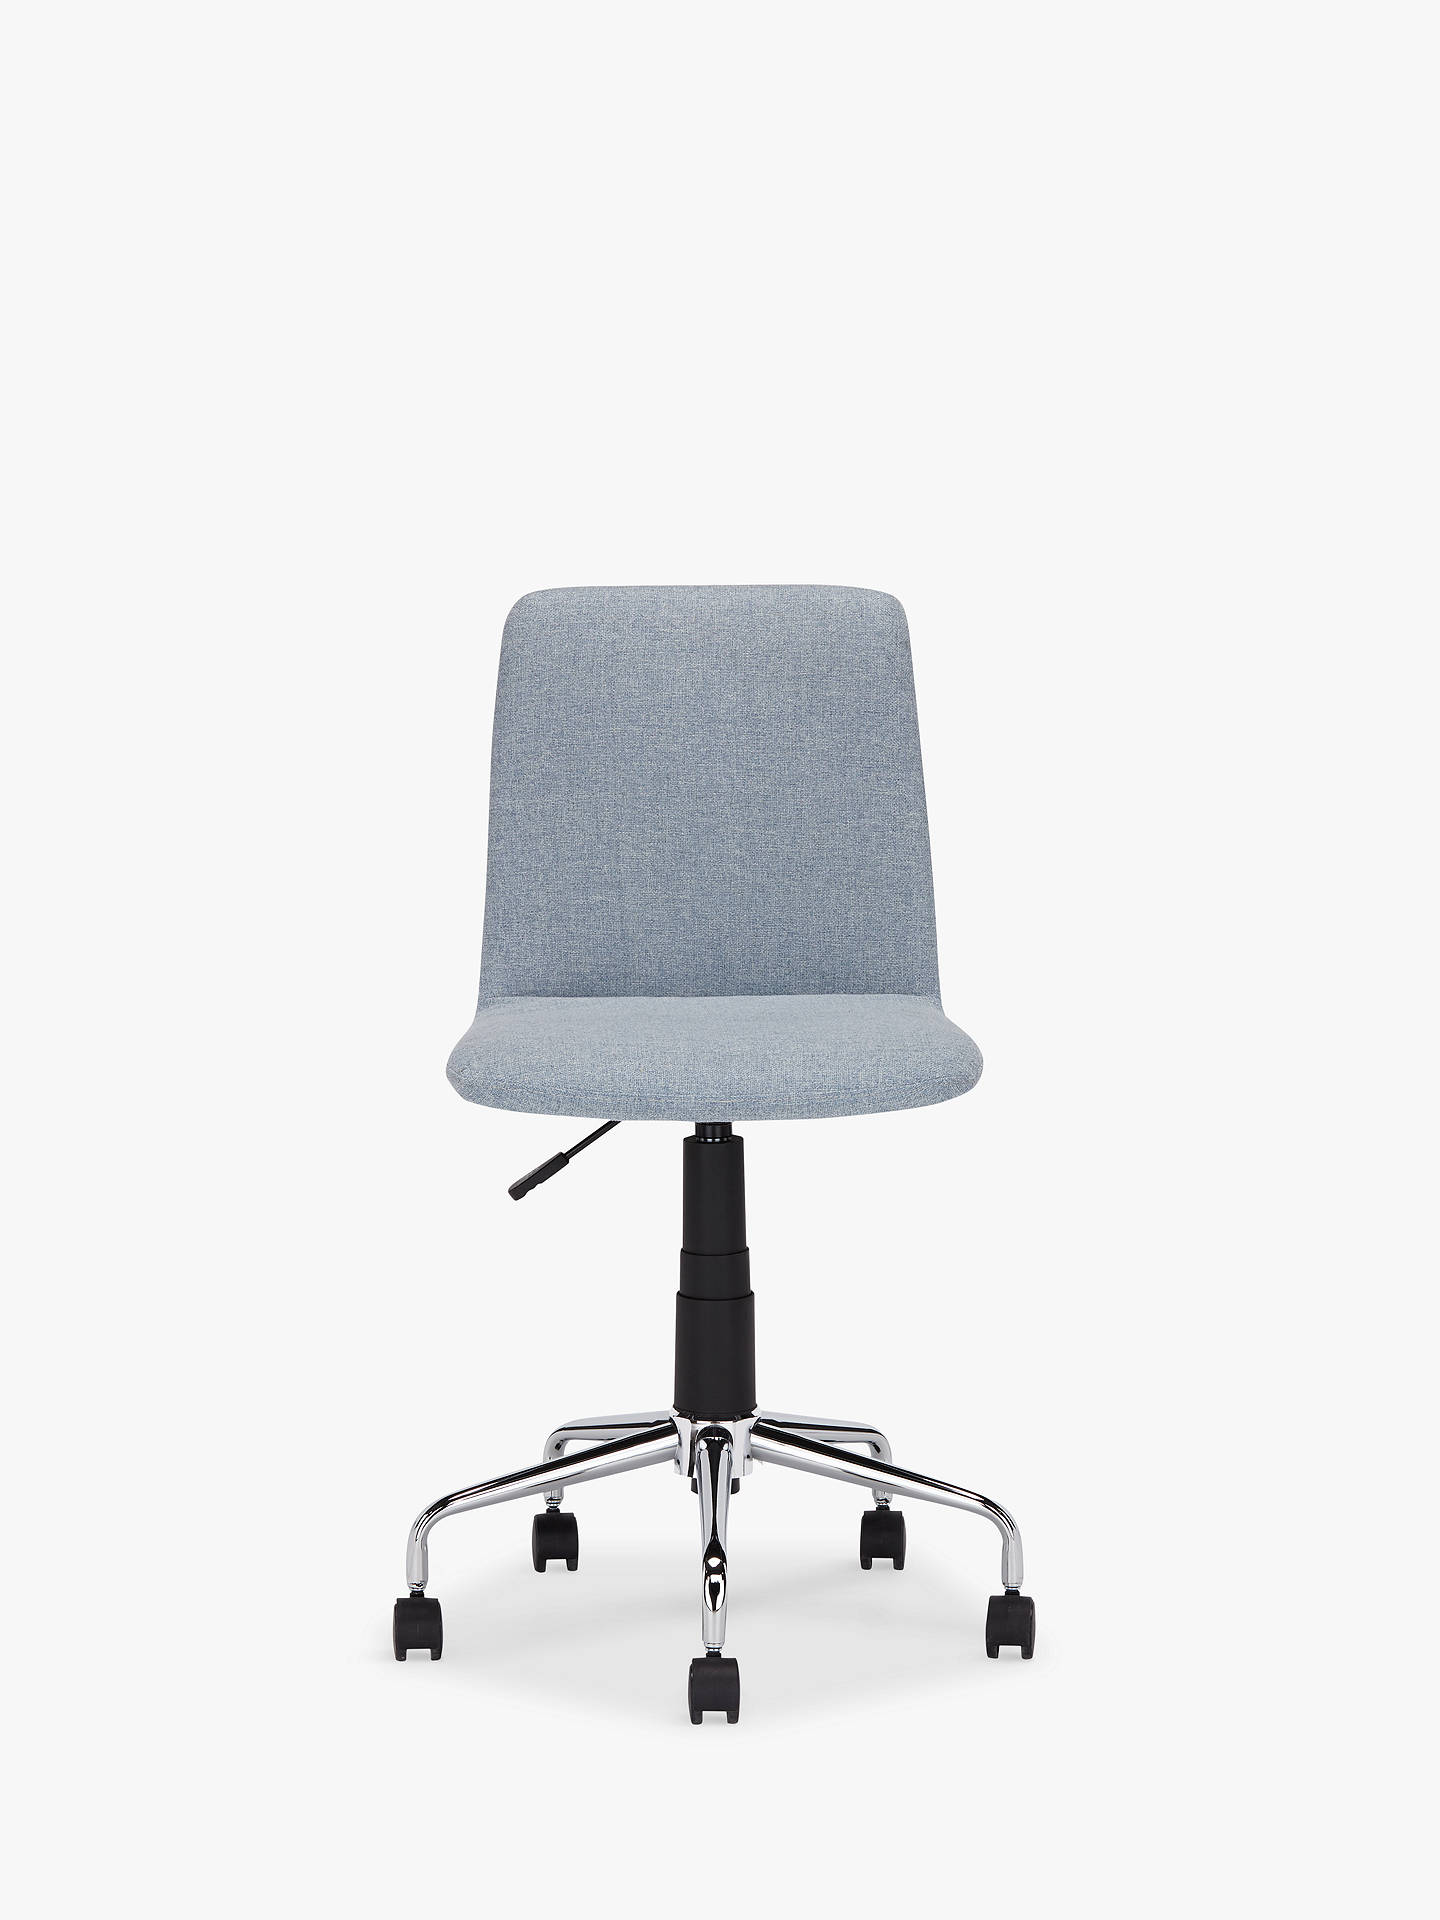 Buyhouse by john lewis nova fabric office chair blue grey online at johnlewis